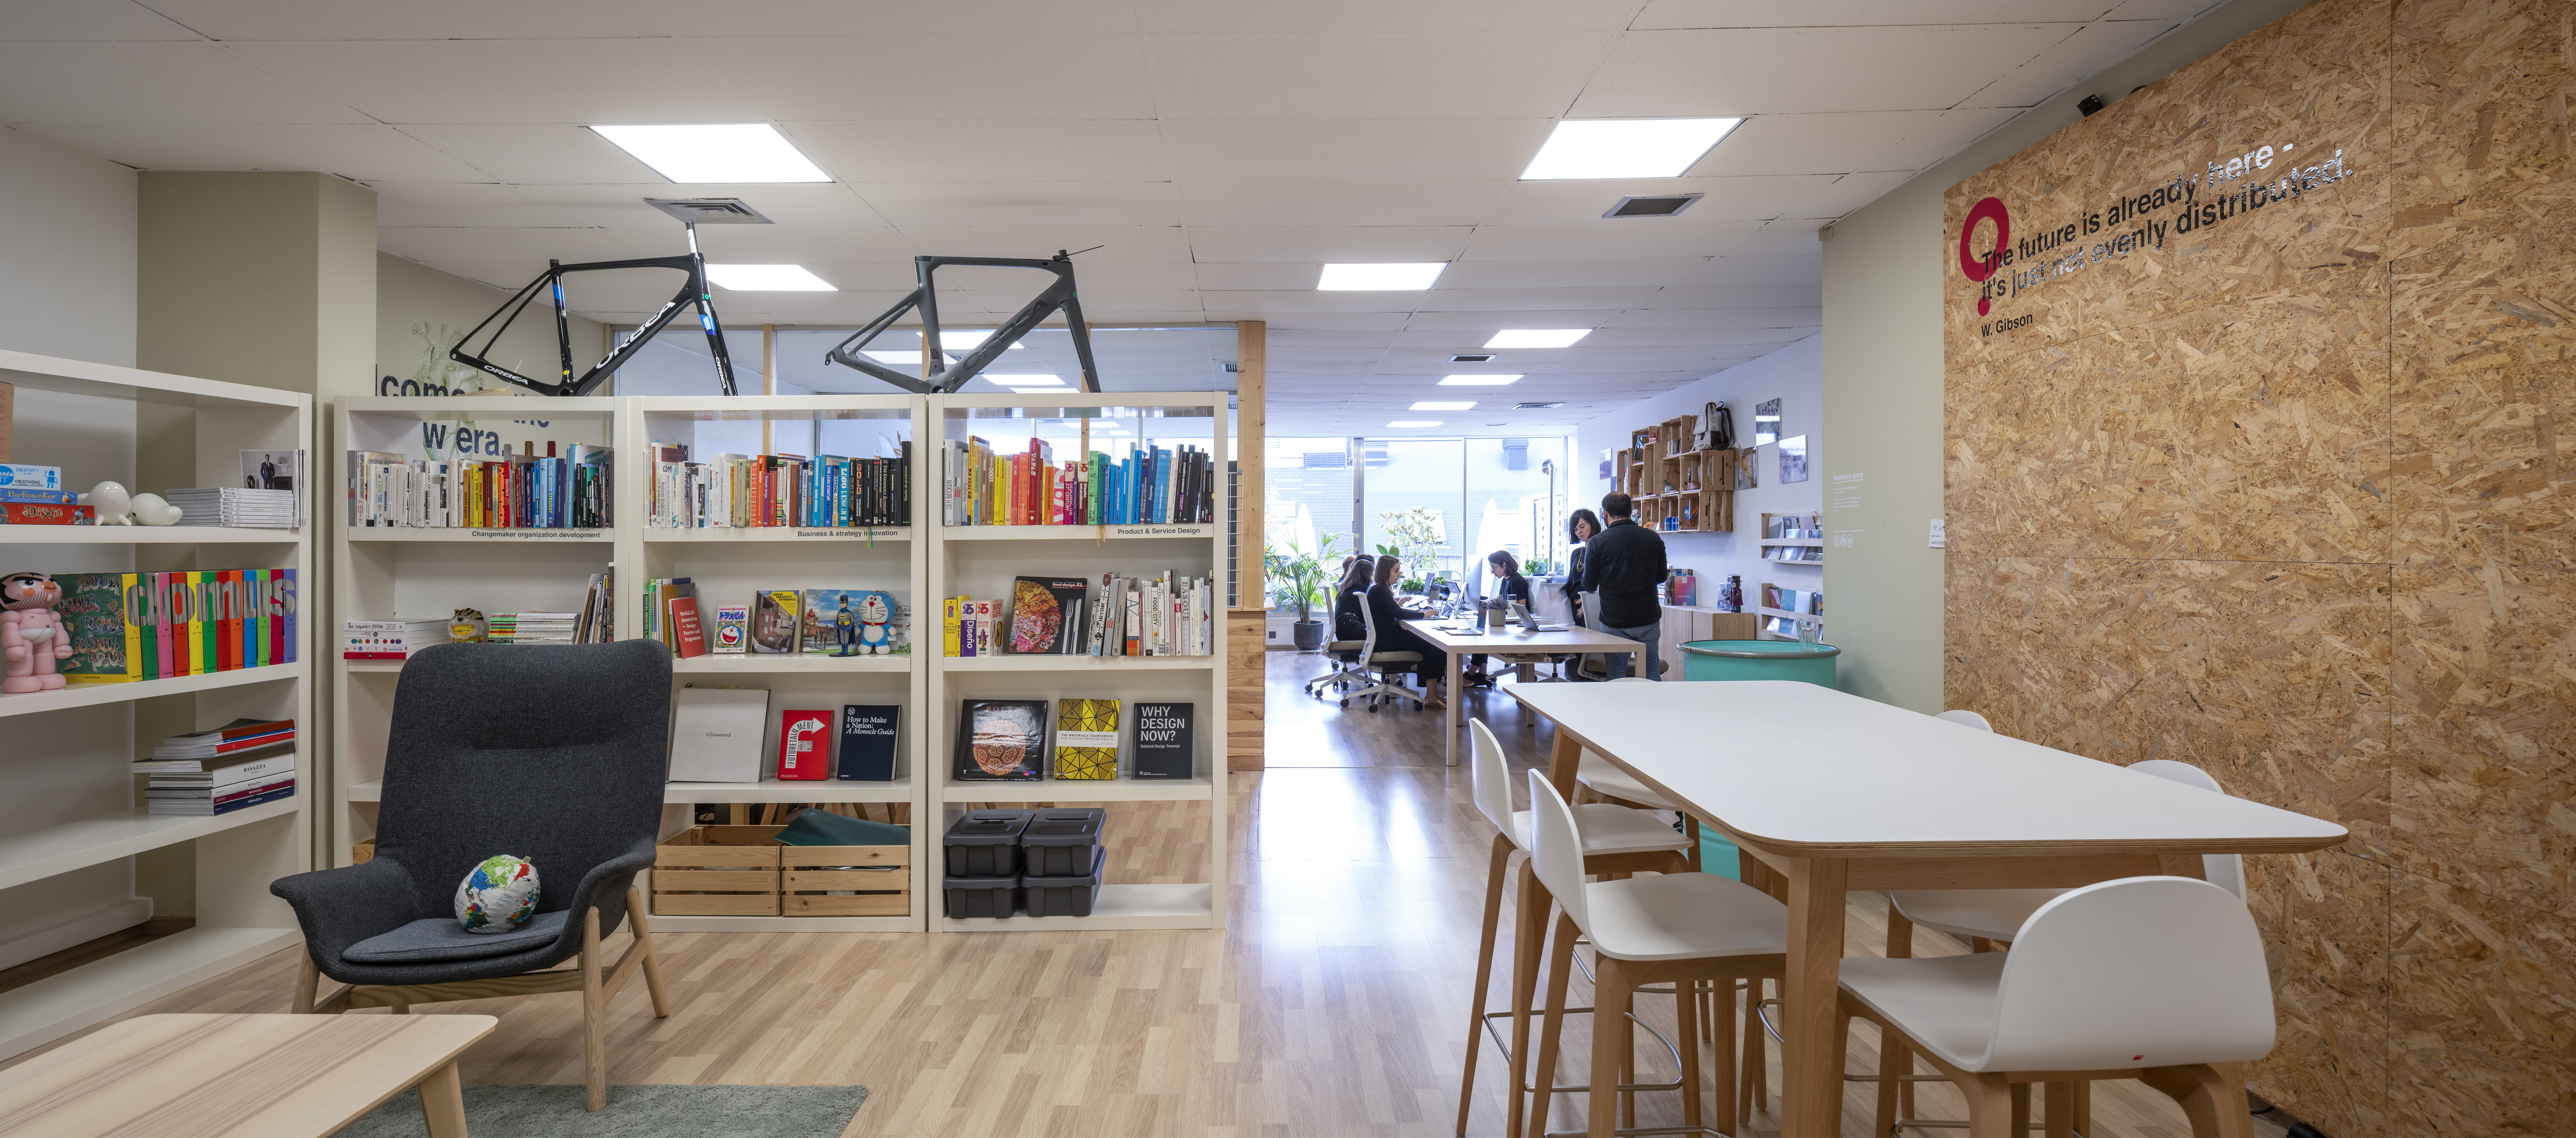 DOT office- DOT- design - strategy - product - office - workspace - innovation - headquarters - Bilbao